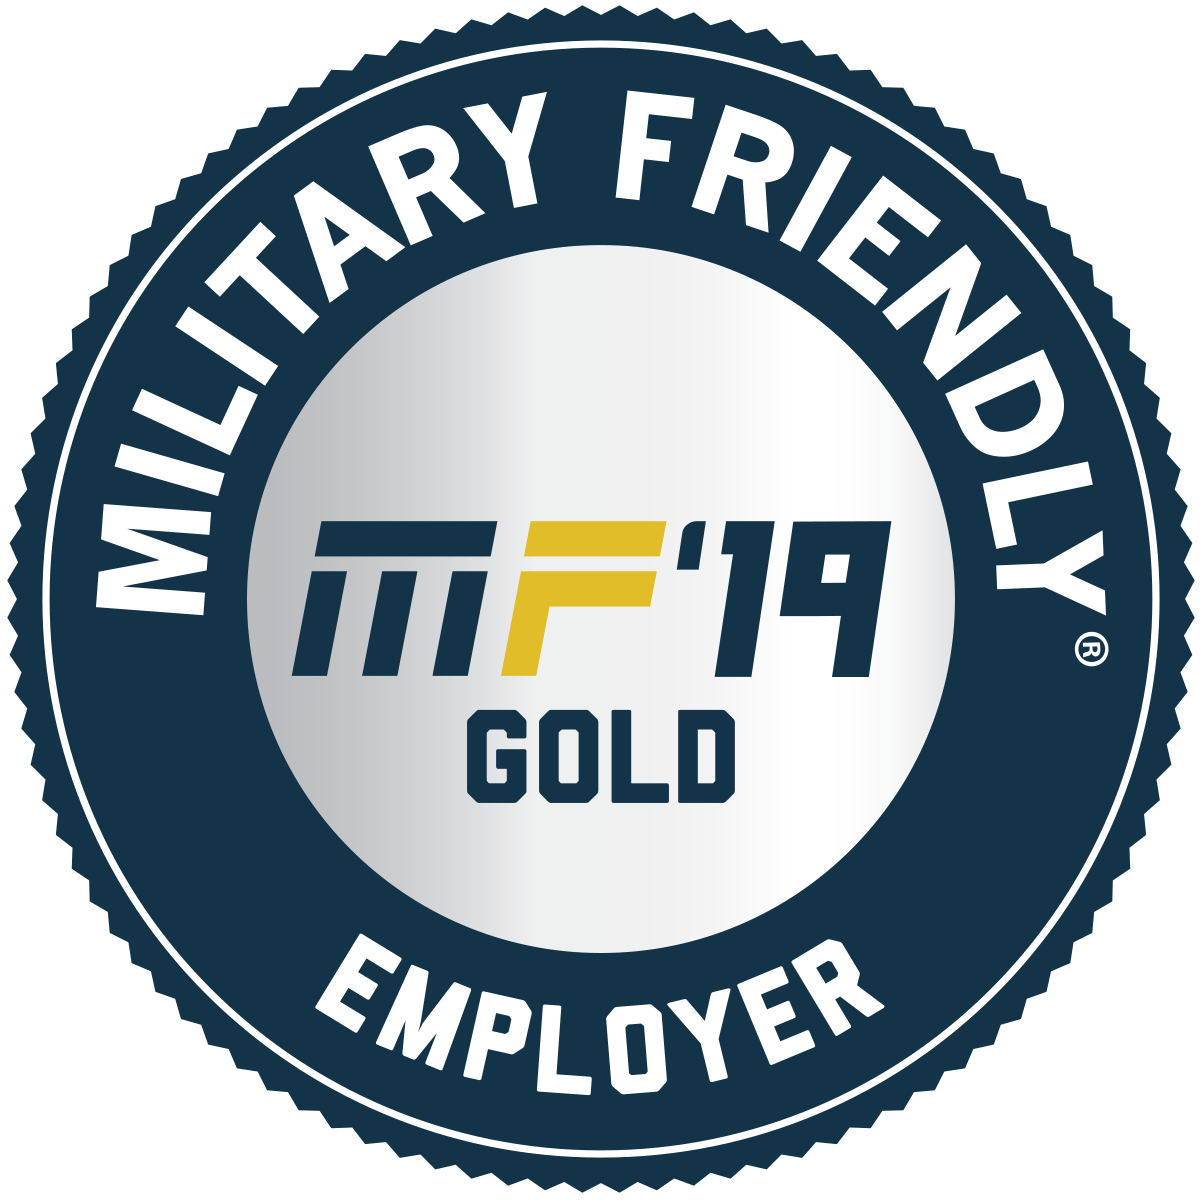 2019 Military Friendly® Gold Employer